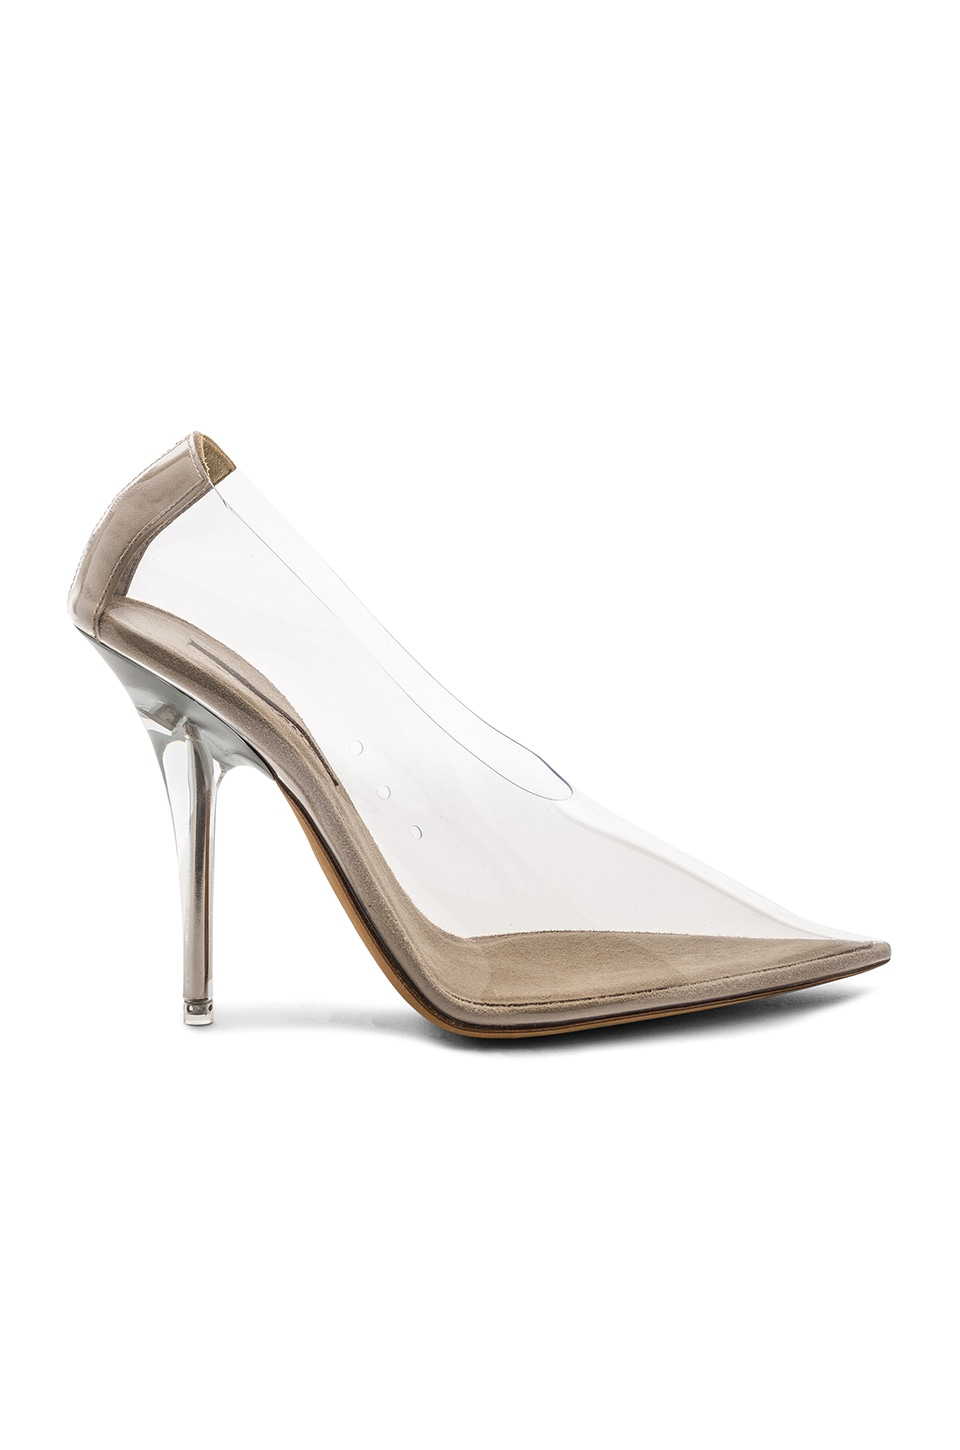 Season 5 PVC Pump by YEEZY, available on revolve.com Kylie Jenner Shoes Exact Product